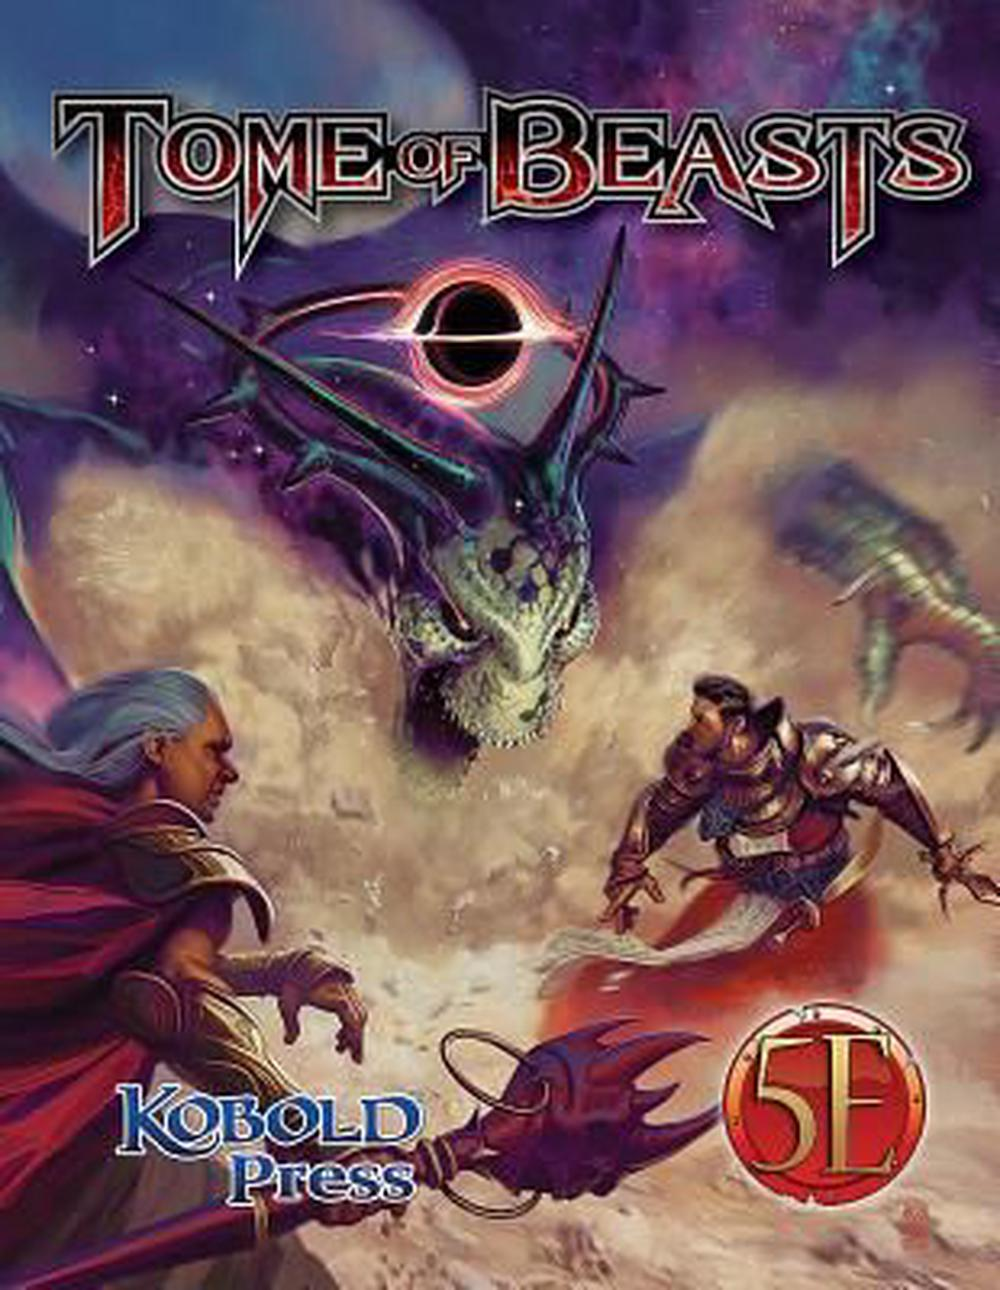 Tome of Beasts by Wolfgang Baur, ISBN: 9781936781560